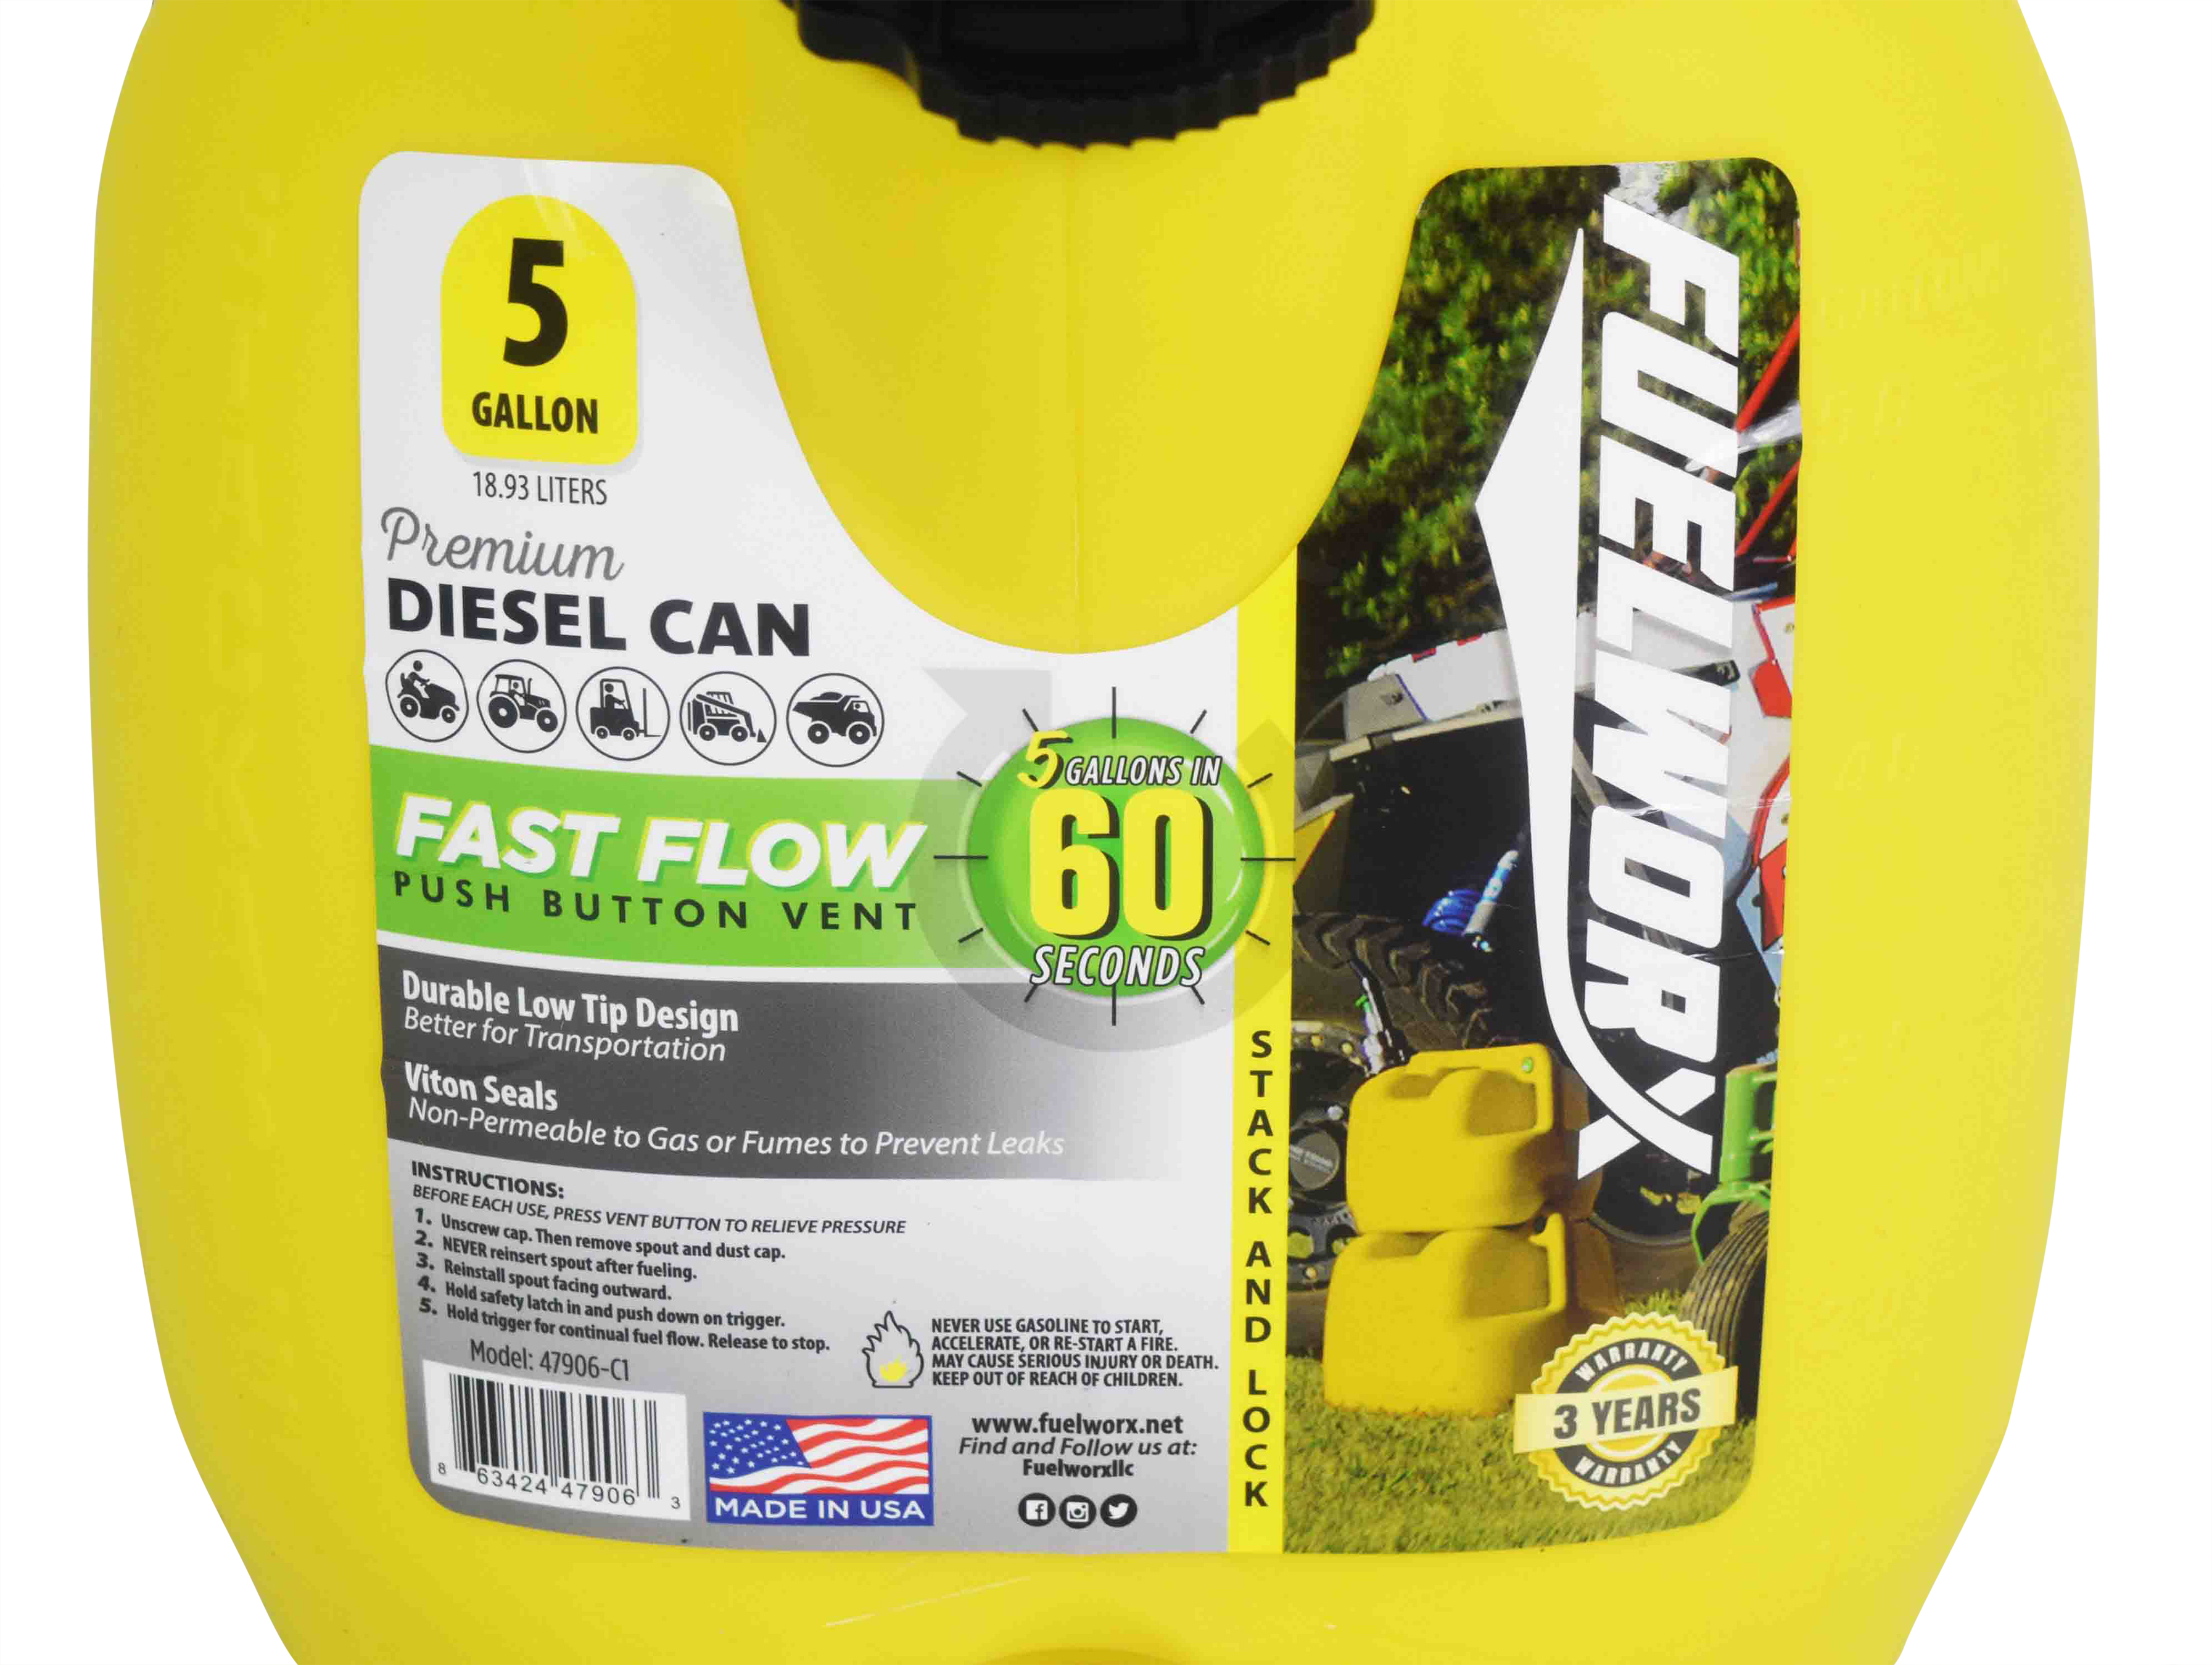 Fuelworx-Yellow-5-Gallon-Stackable-Fast-Pour-Diesel-Fuel-Cans-CARB-Compliant-Made-in-The-USA-5-Gallon-Diesel-Cans-3-Pack-image-8